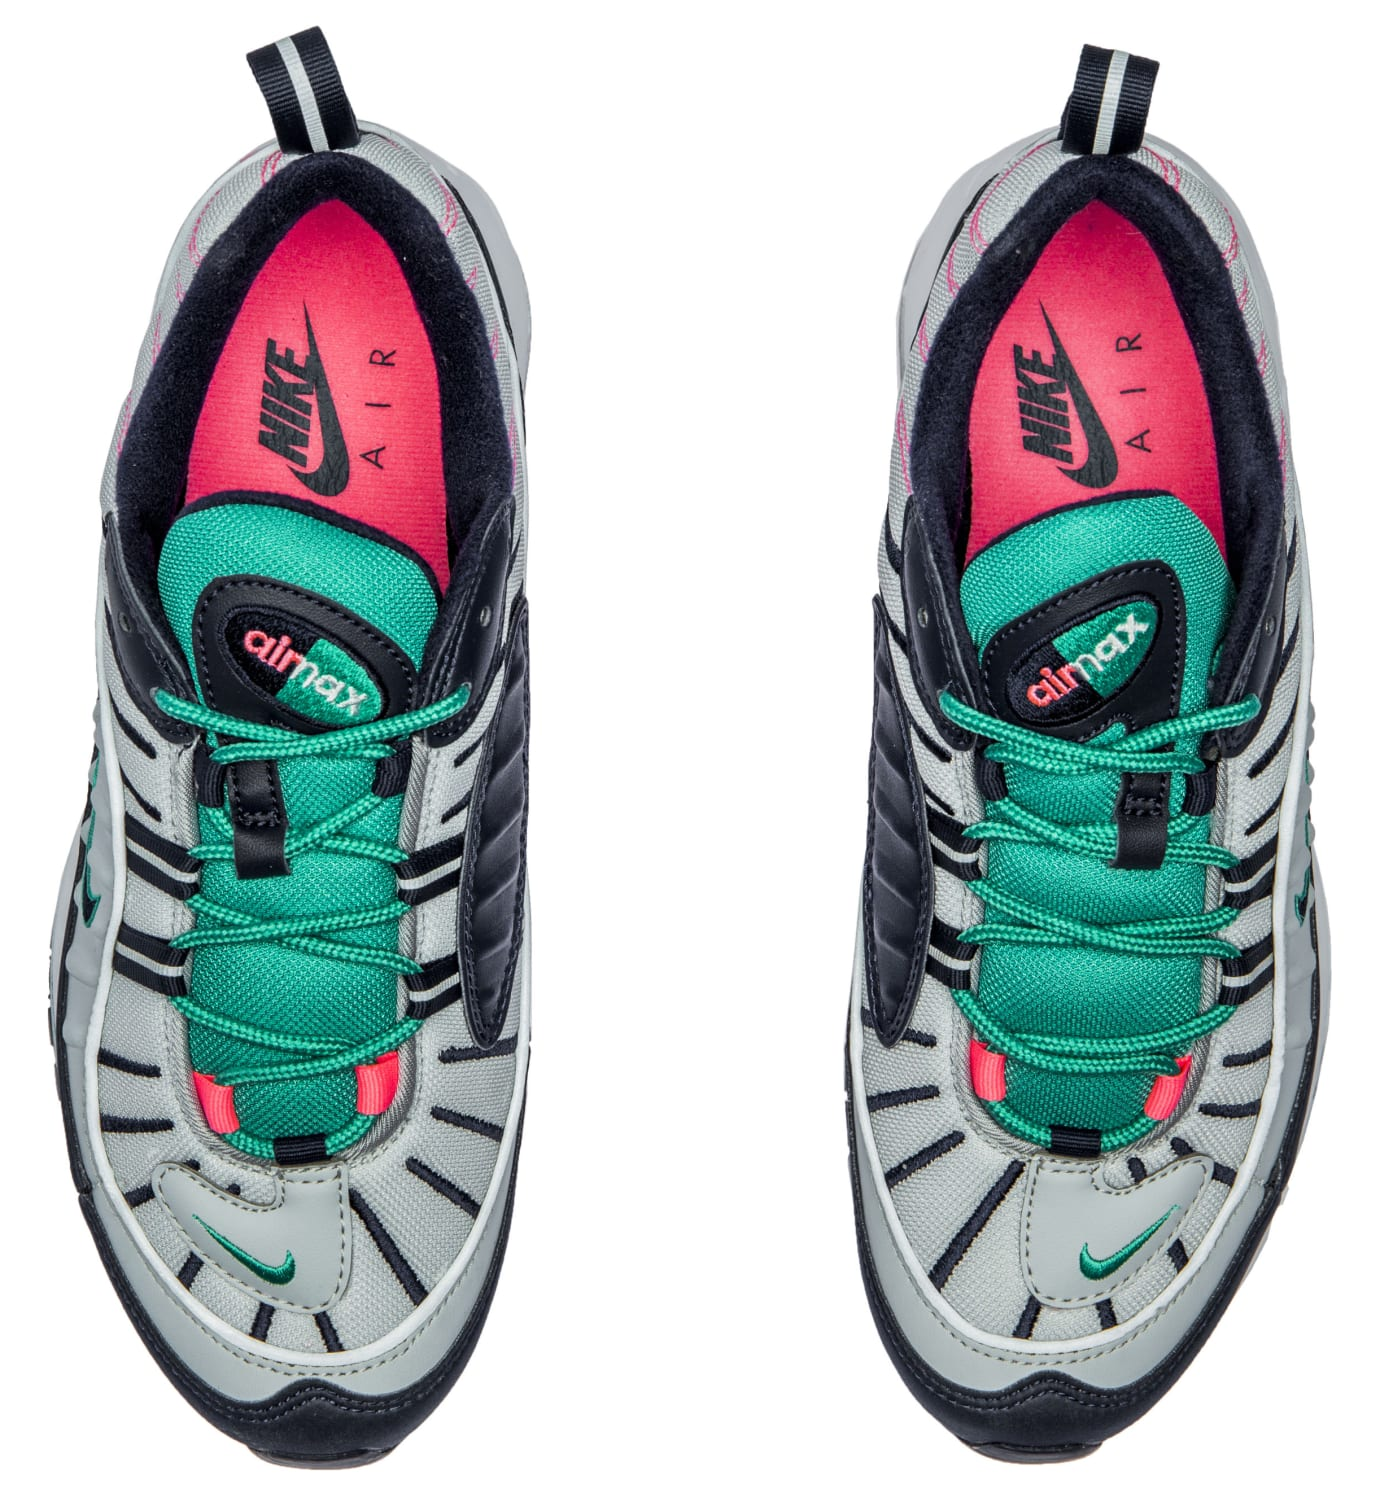 Nike Air Max 98 'Pure Platinum/Obsidian/Kinetic Green' 640744-005 (Top Pair)